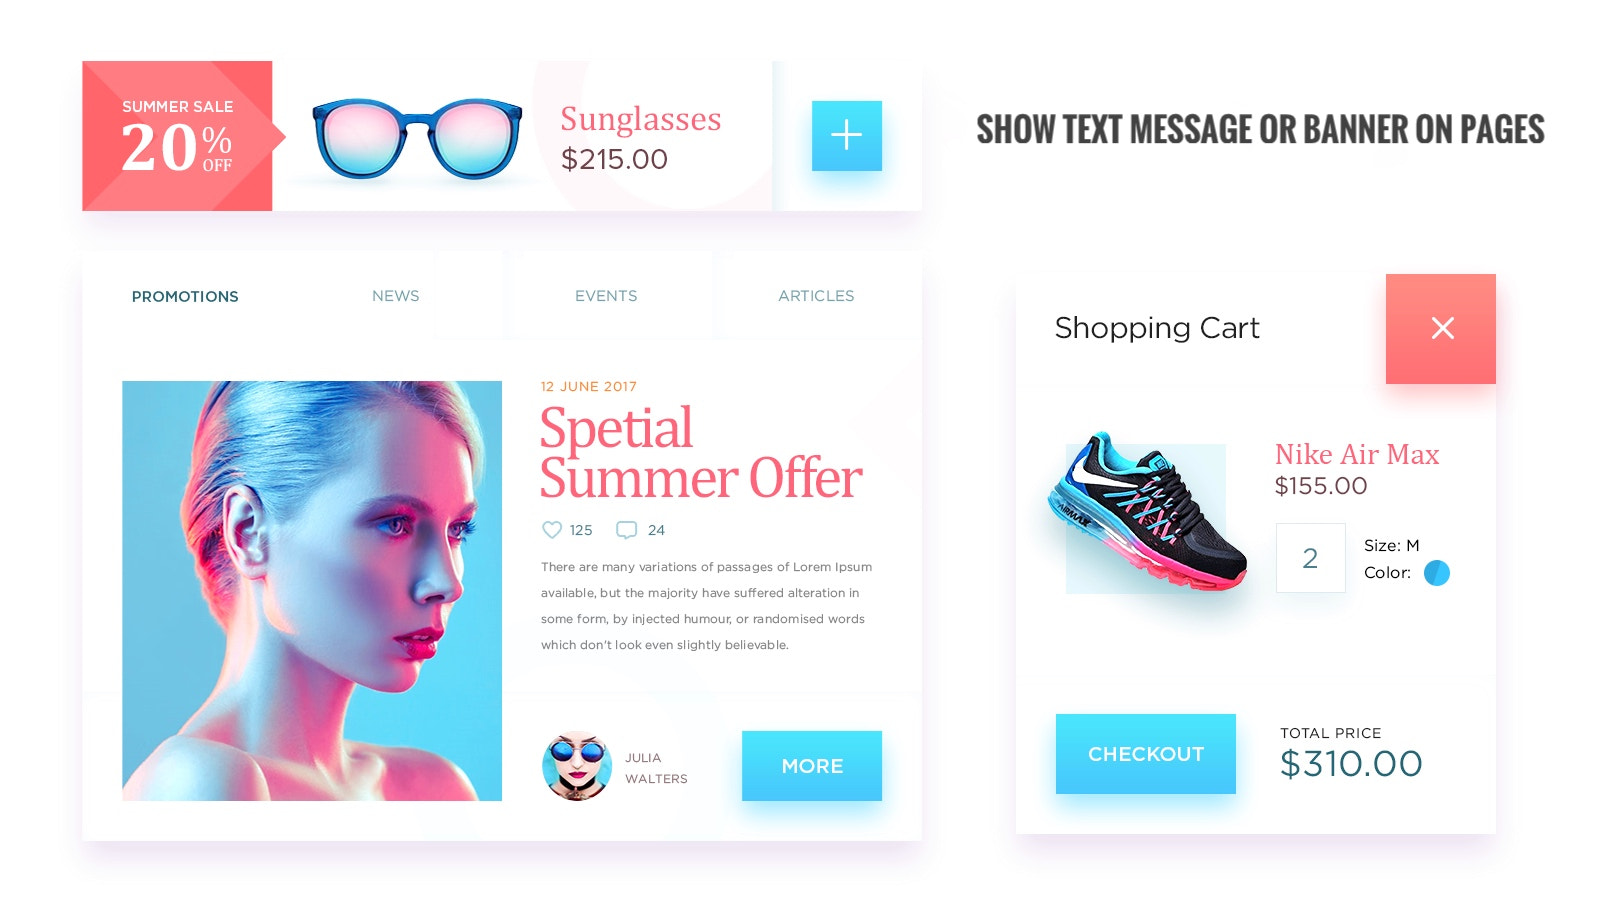 display text message or banner on shopping cart